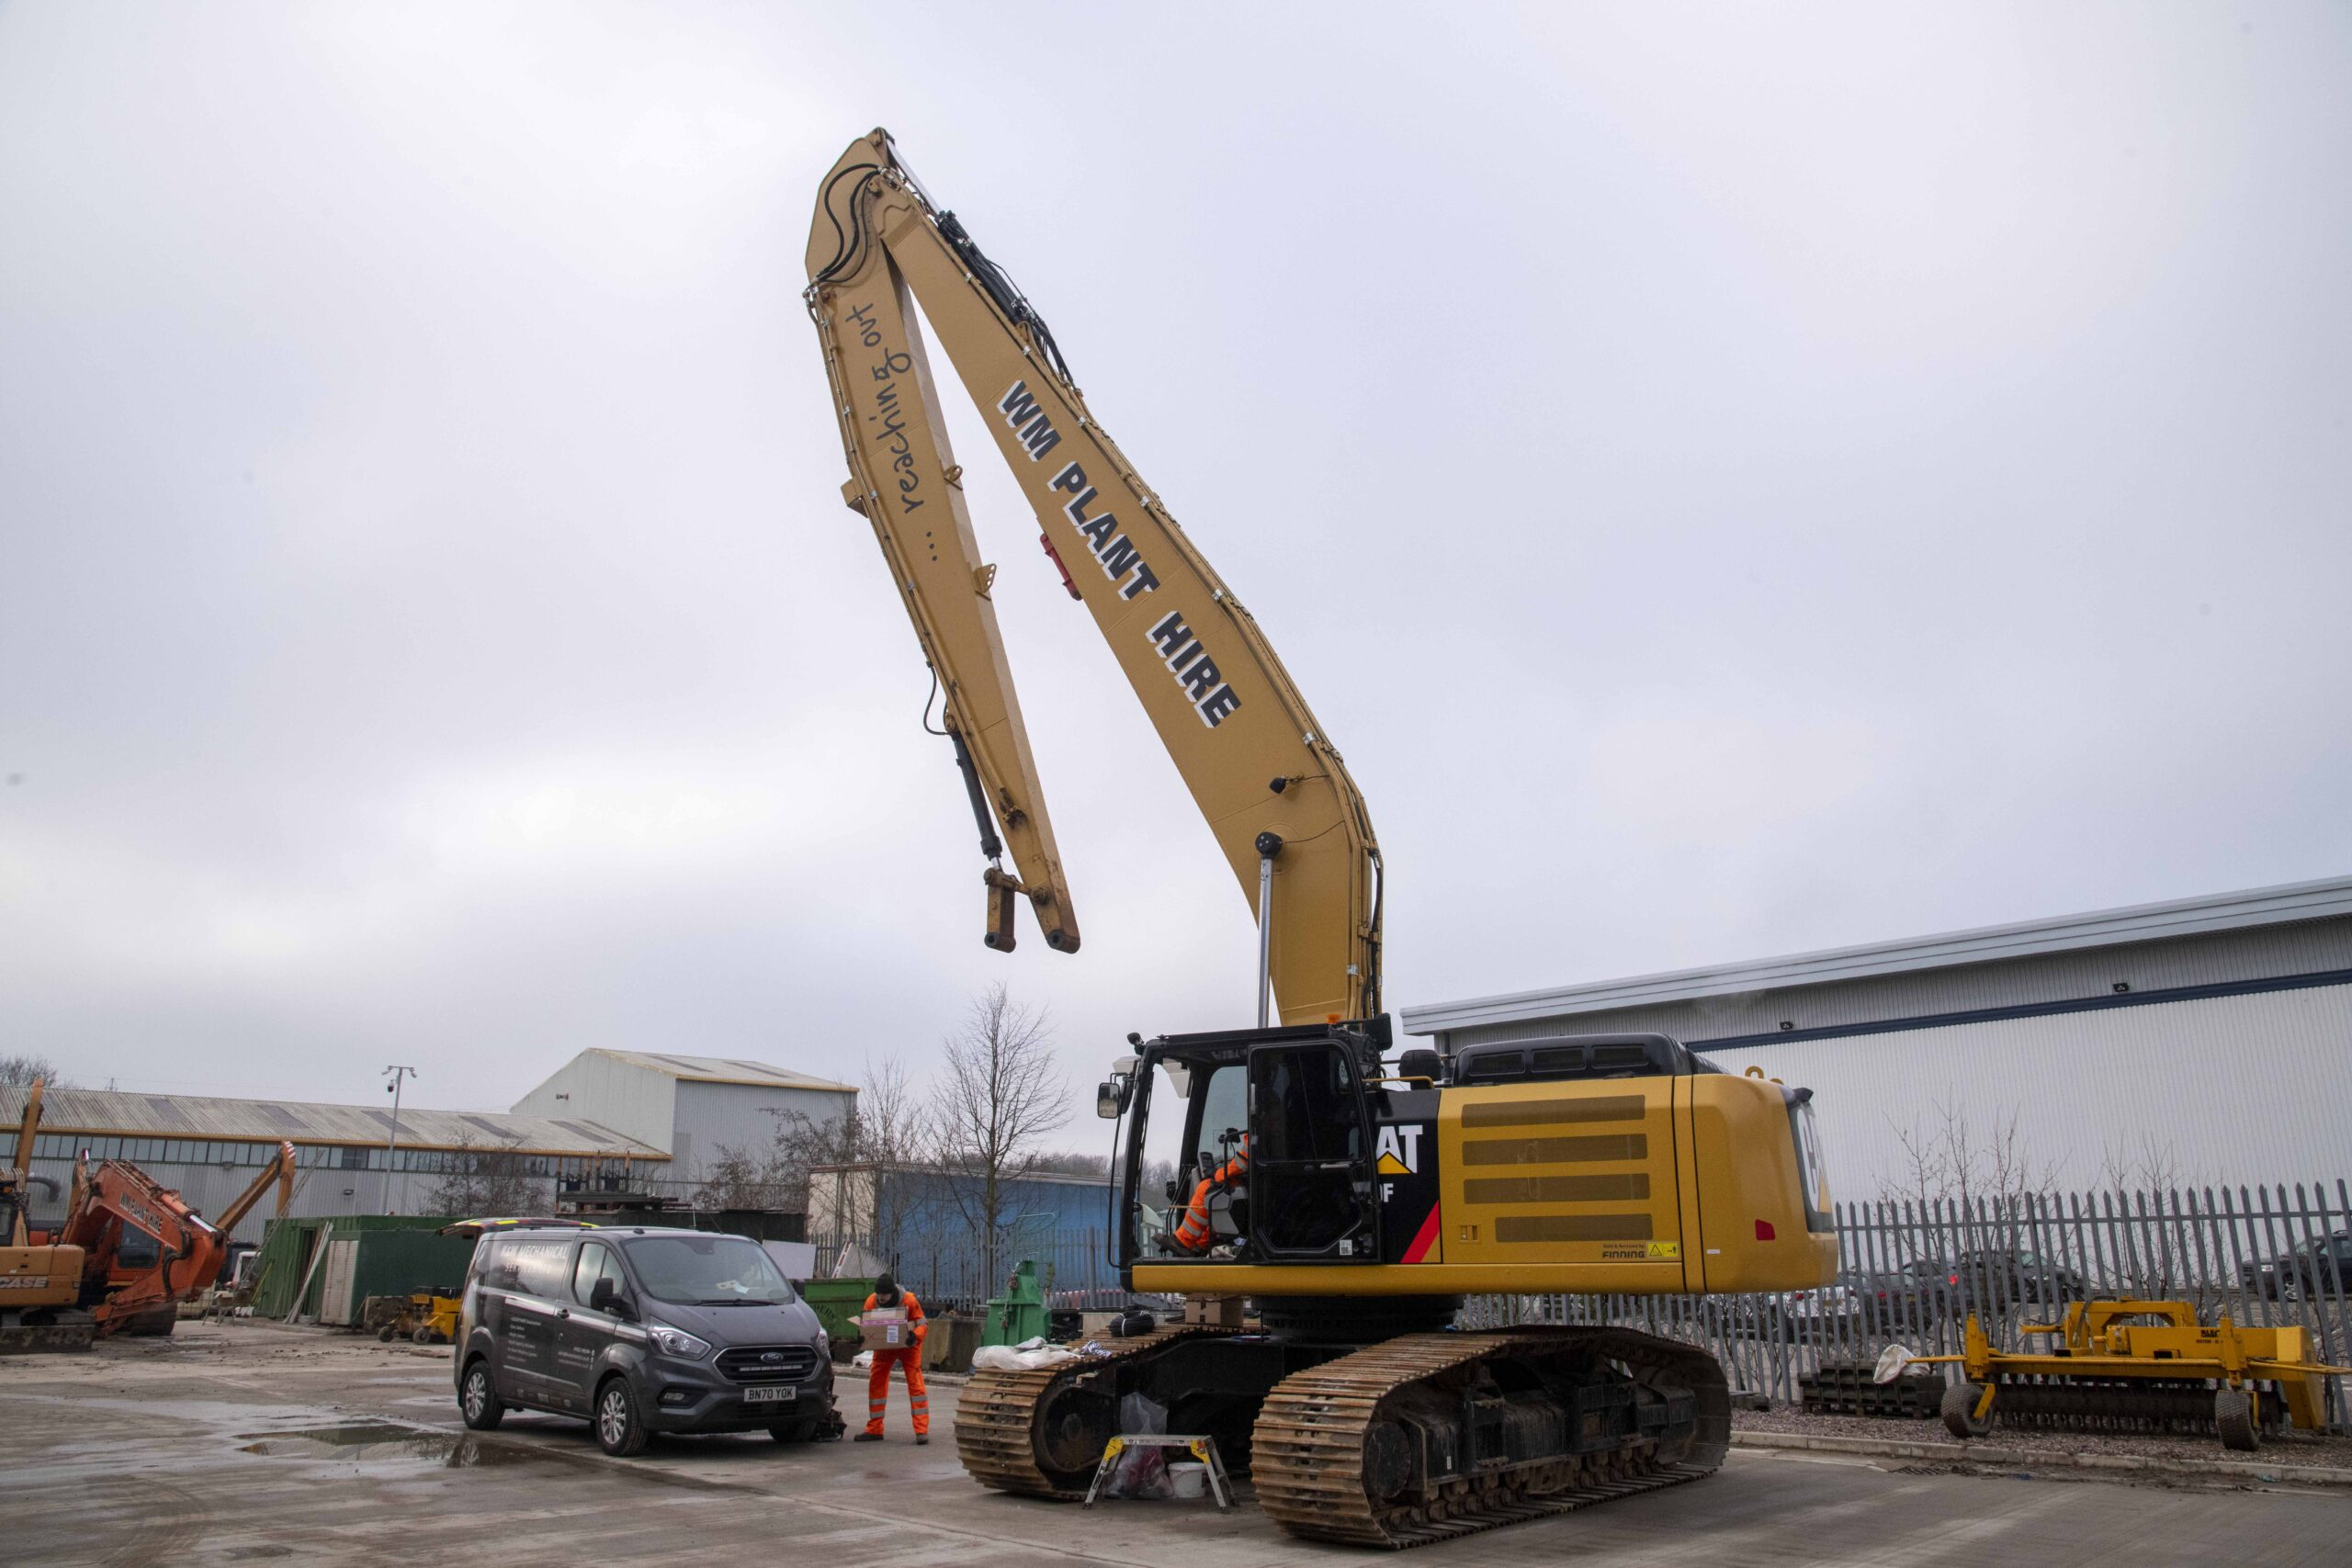 The UK's leading long reach excavator hire company, WM Plant Hire has recently joined the XWatch revolution